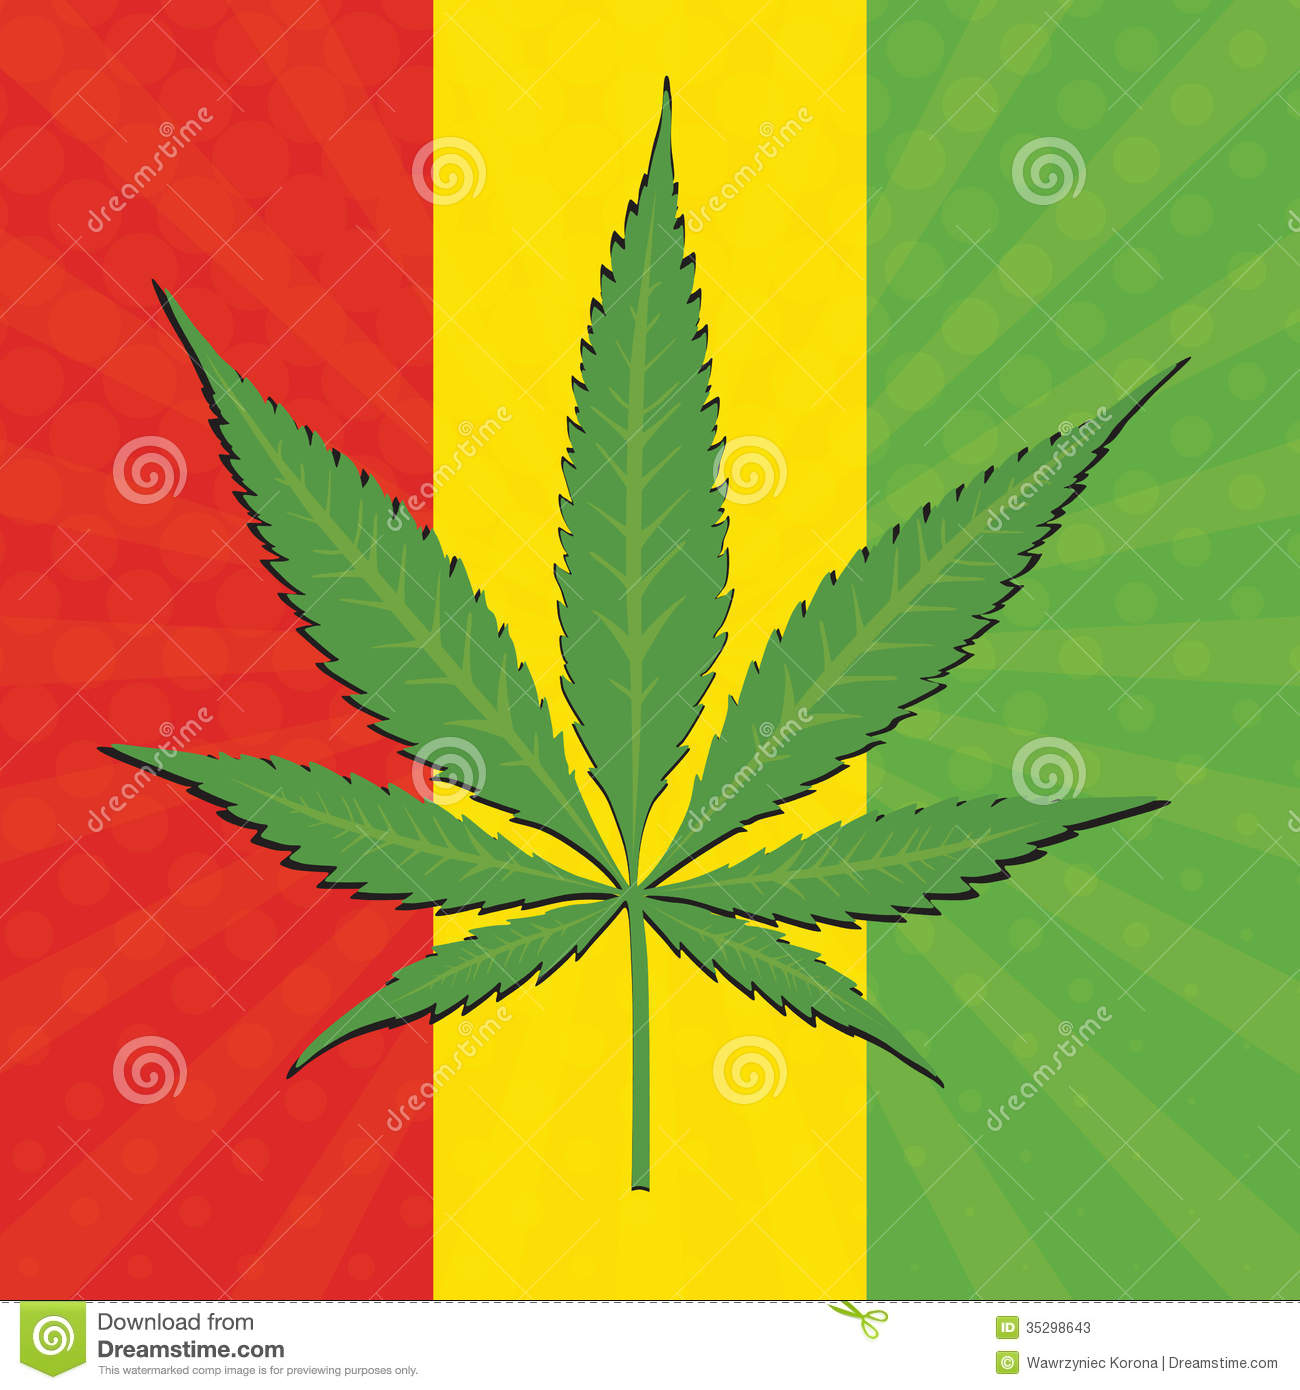 Feuille de cannabis de vecteur illustration de vecteur illustration du penchant noir 35298643 - Feuille cannabis dessin ...